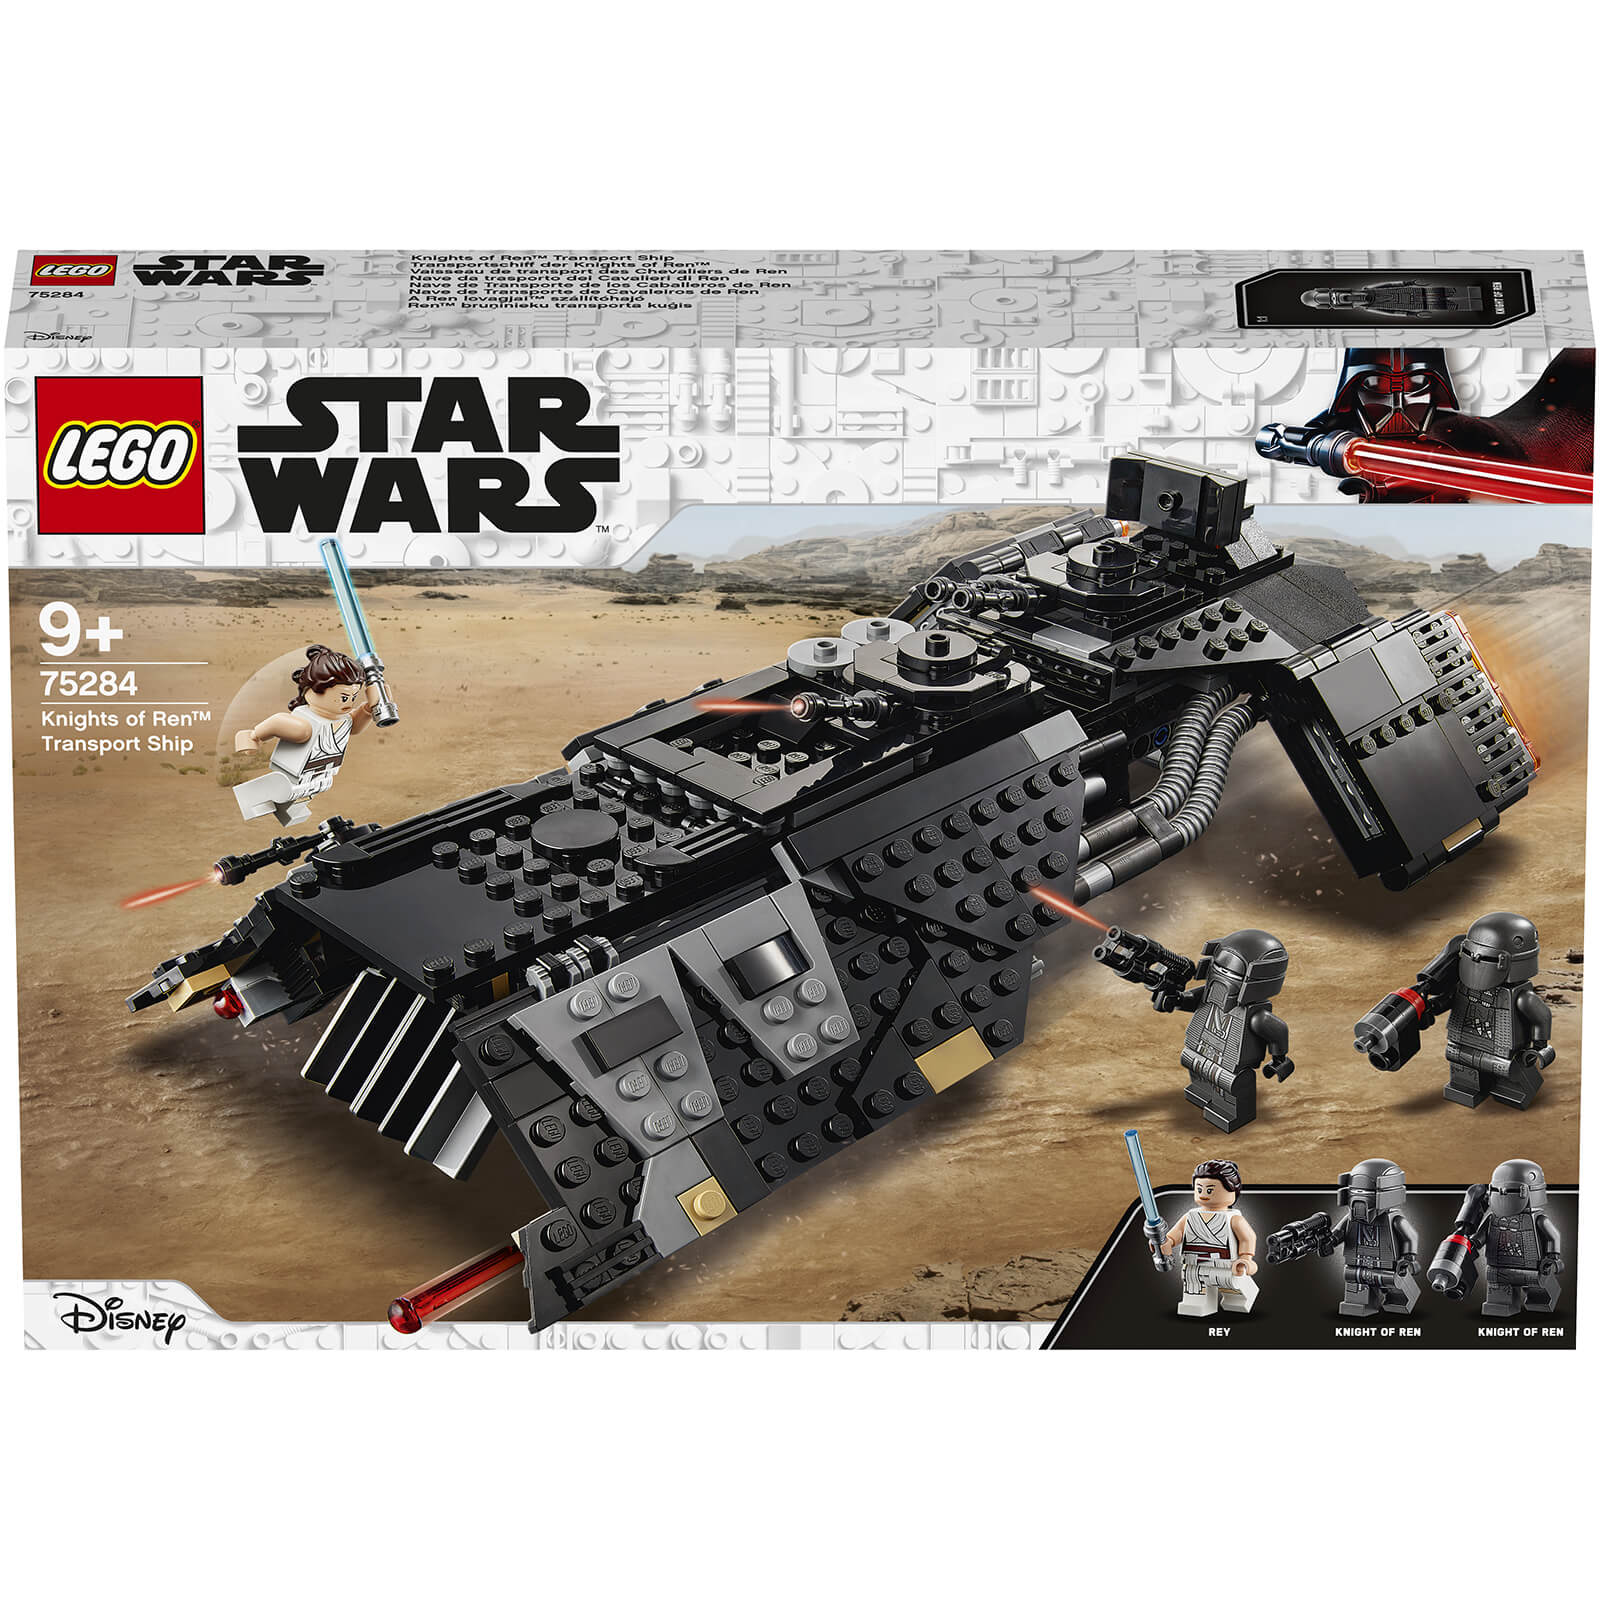 Image of LEGO Star Wars Knights of Ren Transport Ship - 75284